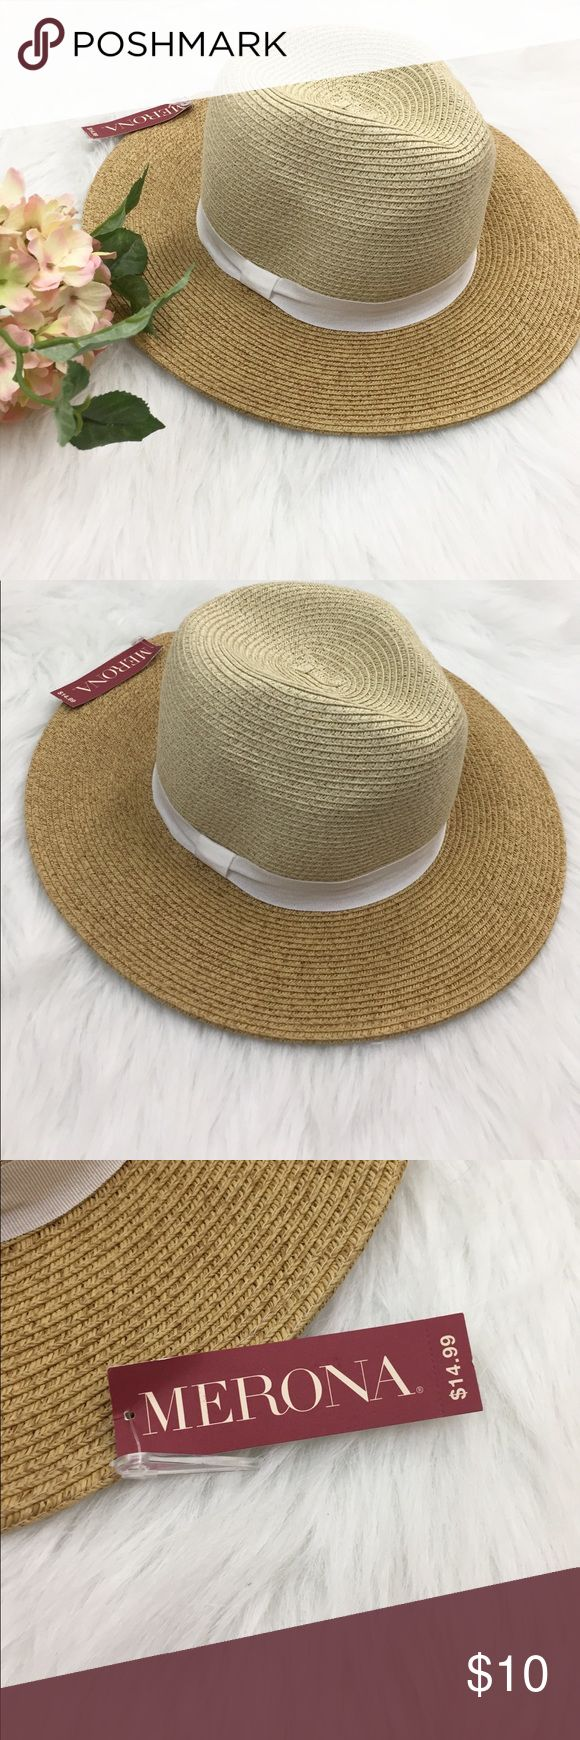 """NWT Merona Woven Rancher Hat in Tan New with tags. Rancher woven straw sun hat. Feels thick and durable. Last pic isn't exact hat, but is the same size and style. Top part is slightly lighter tan than brim. White ribbon bow accent. Brim is 3 1/4"""" wide. Merona Accessories Hats"""